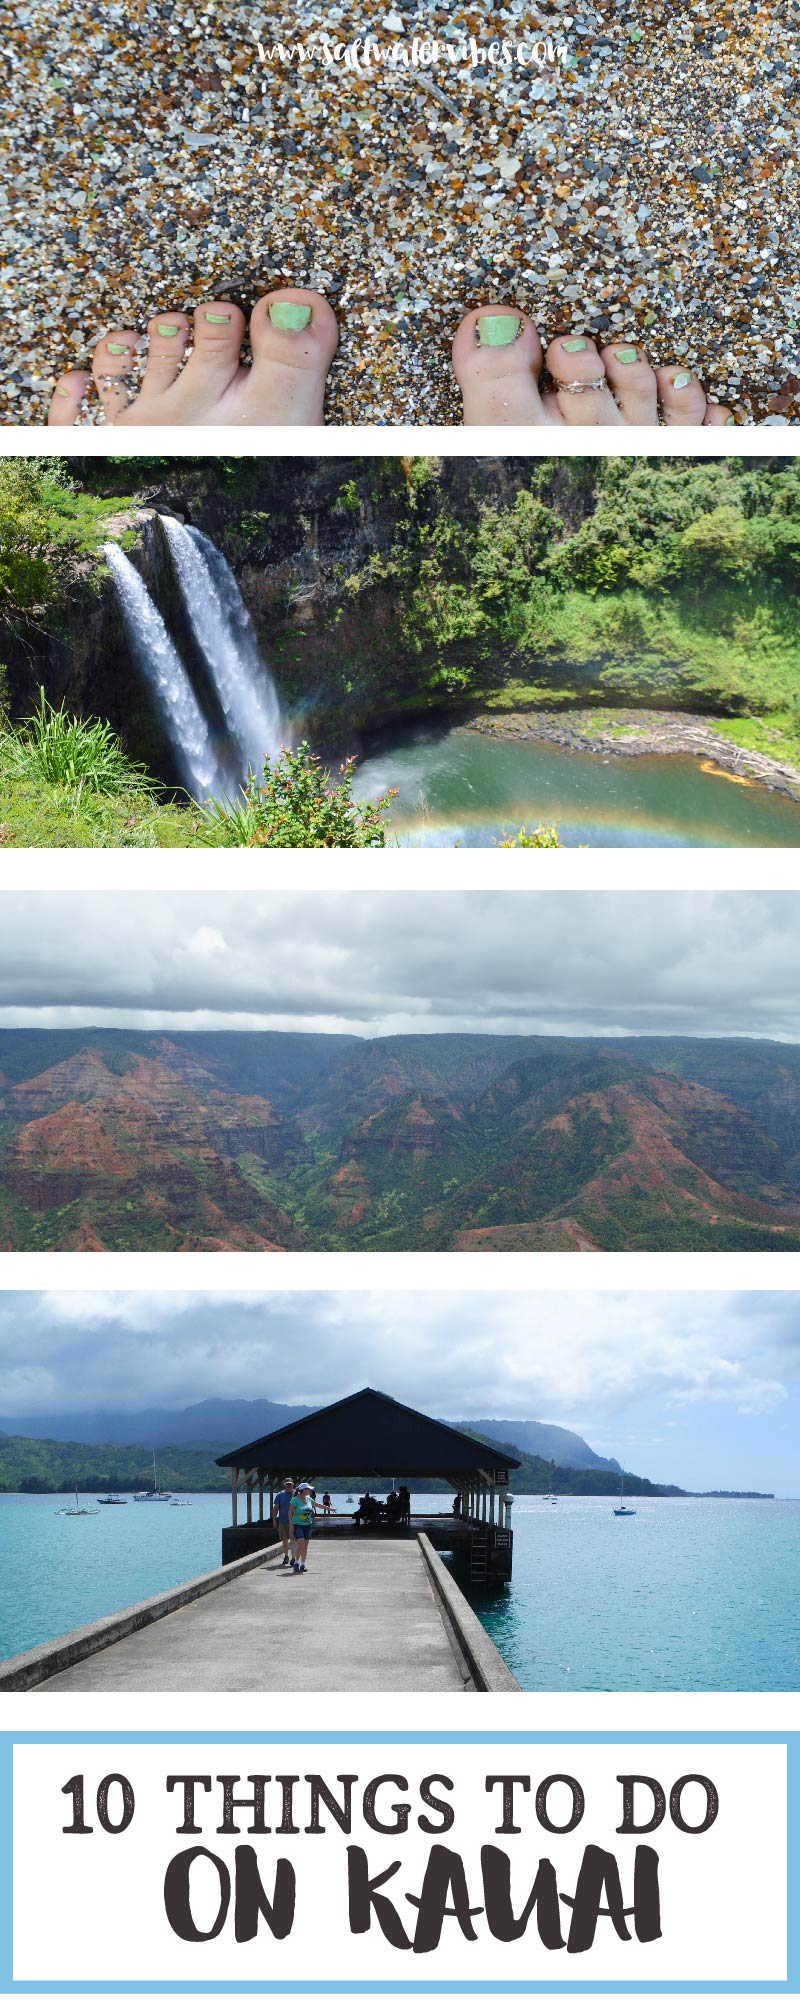 To Things To Do On Kauai Hawaii + SaltWaterVibes